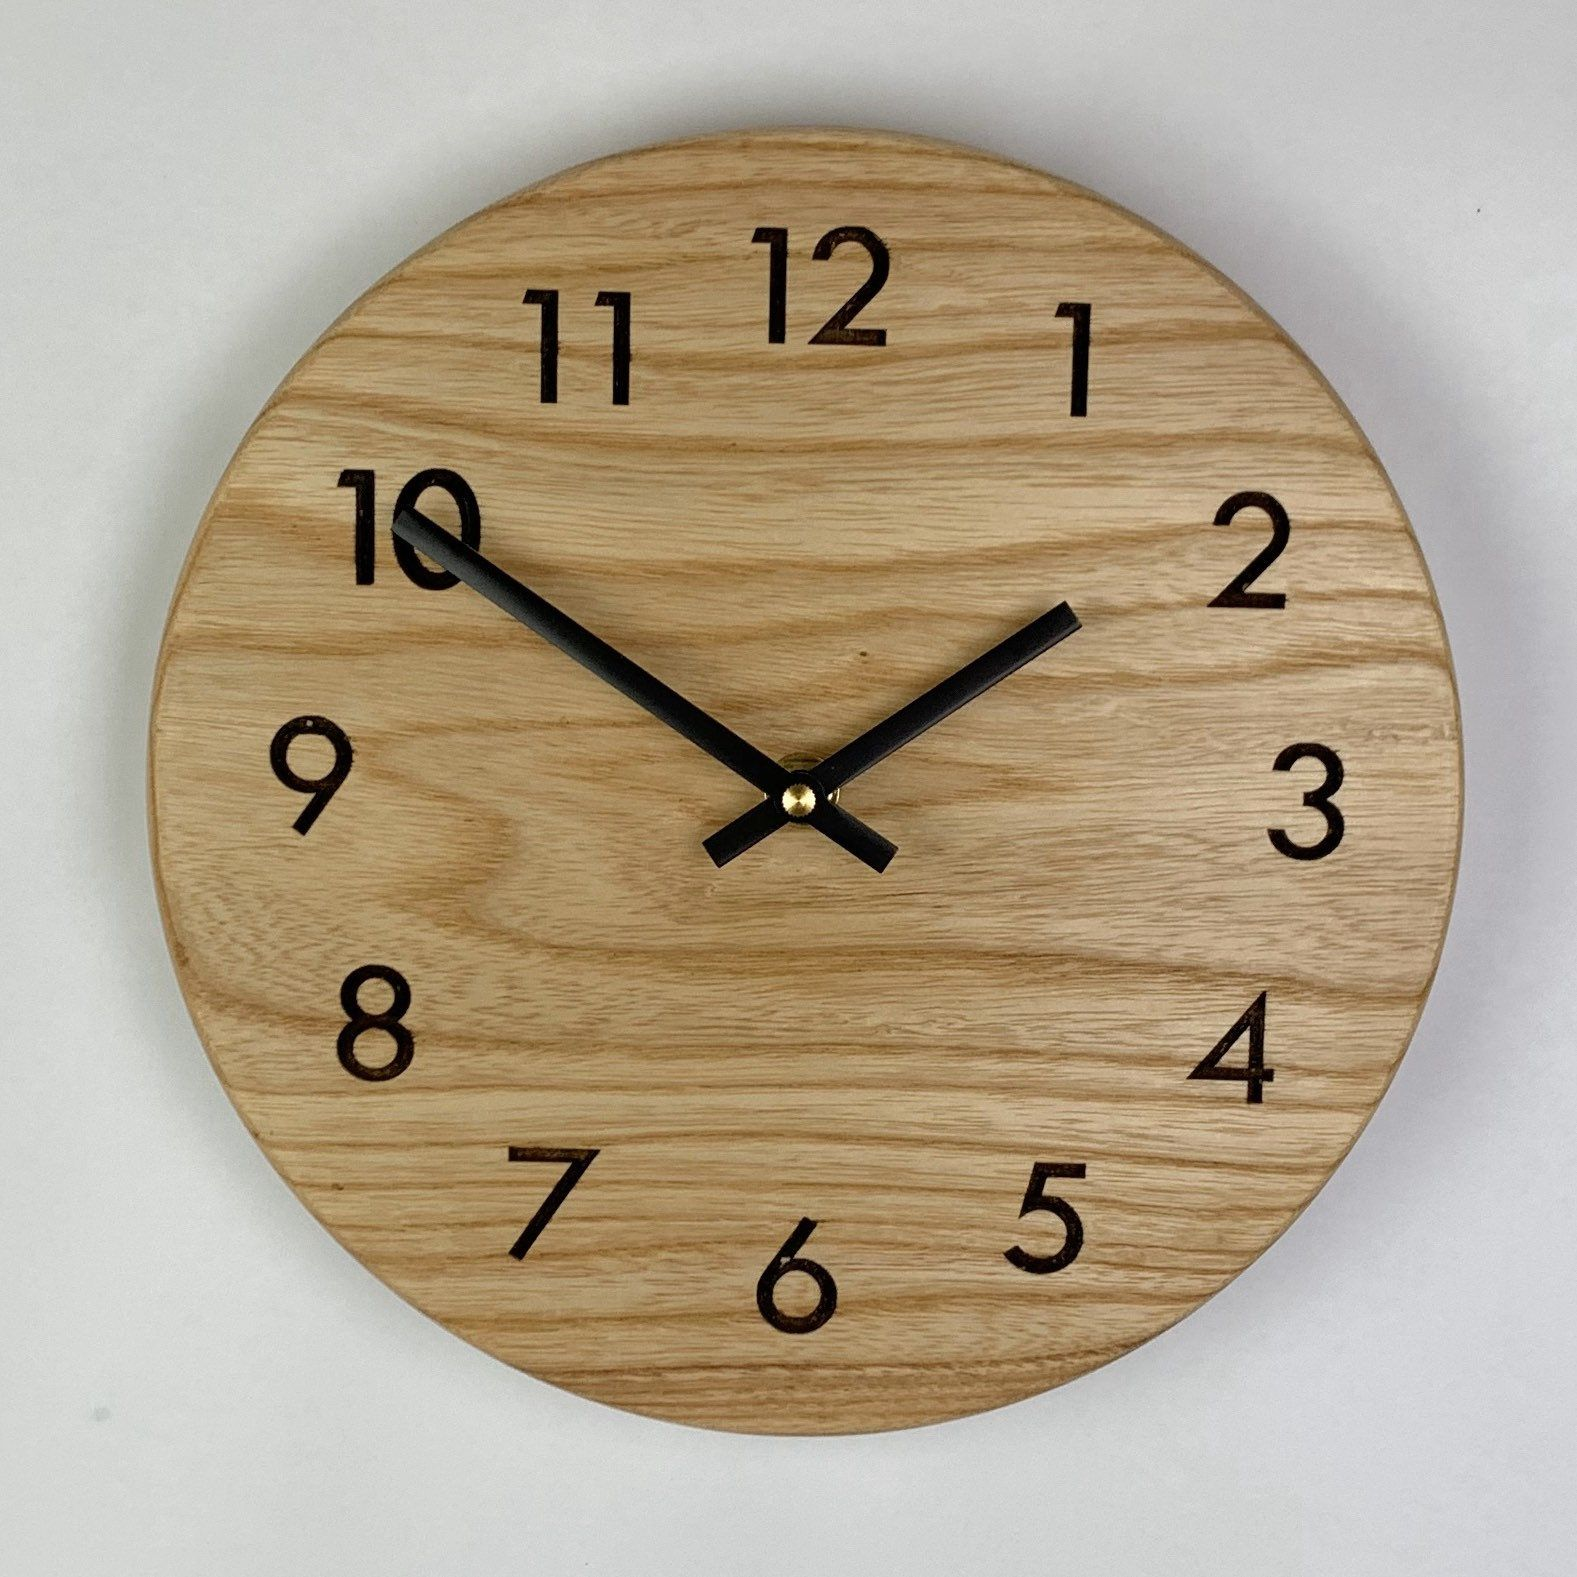 10 Red Oak Wall Clock With Engraved Numbers Handmade Clock86 Etsy In 2020 Handmade Clocks Clock Wall Clock